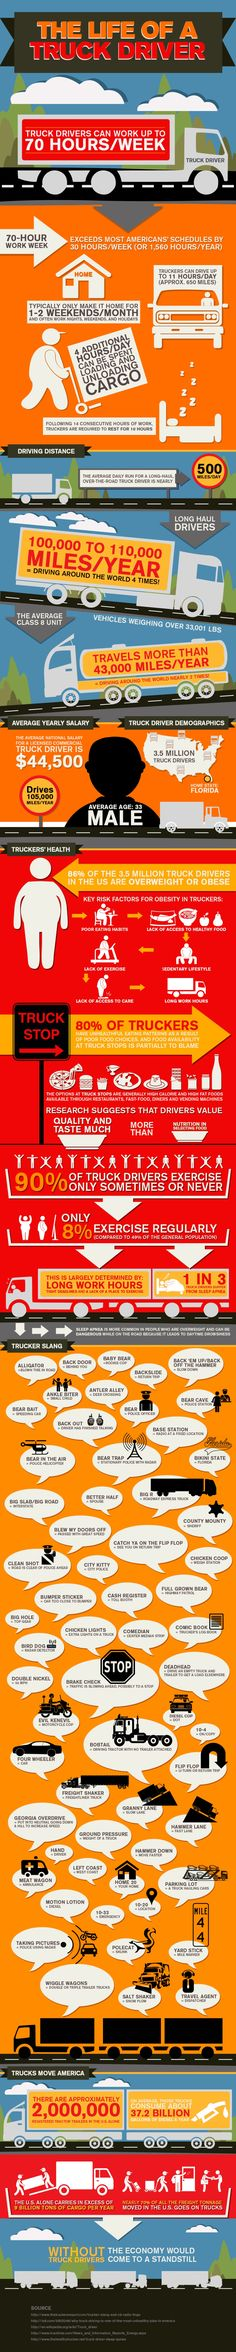 The Life of a Truck Driver Infographic #Trucking #Truckers #SemiTrucks